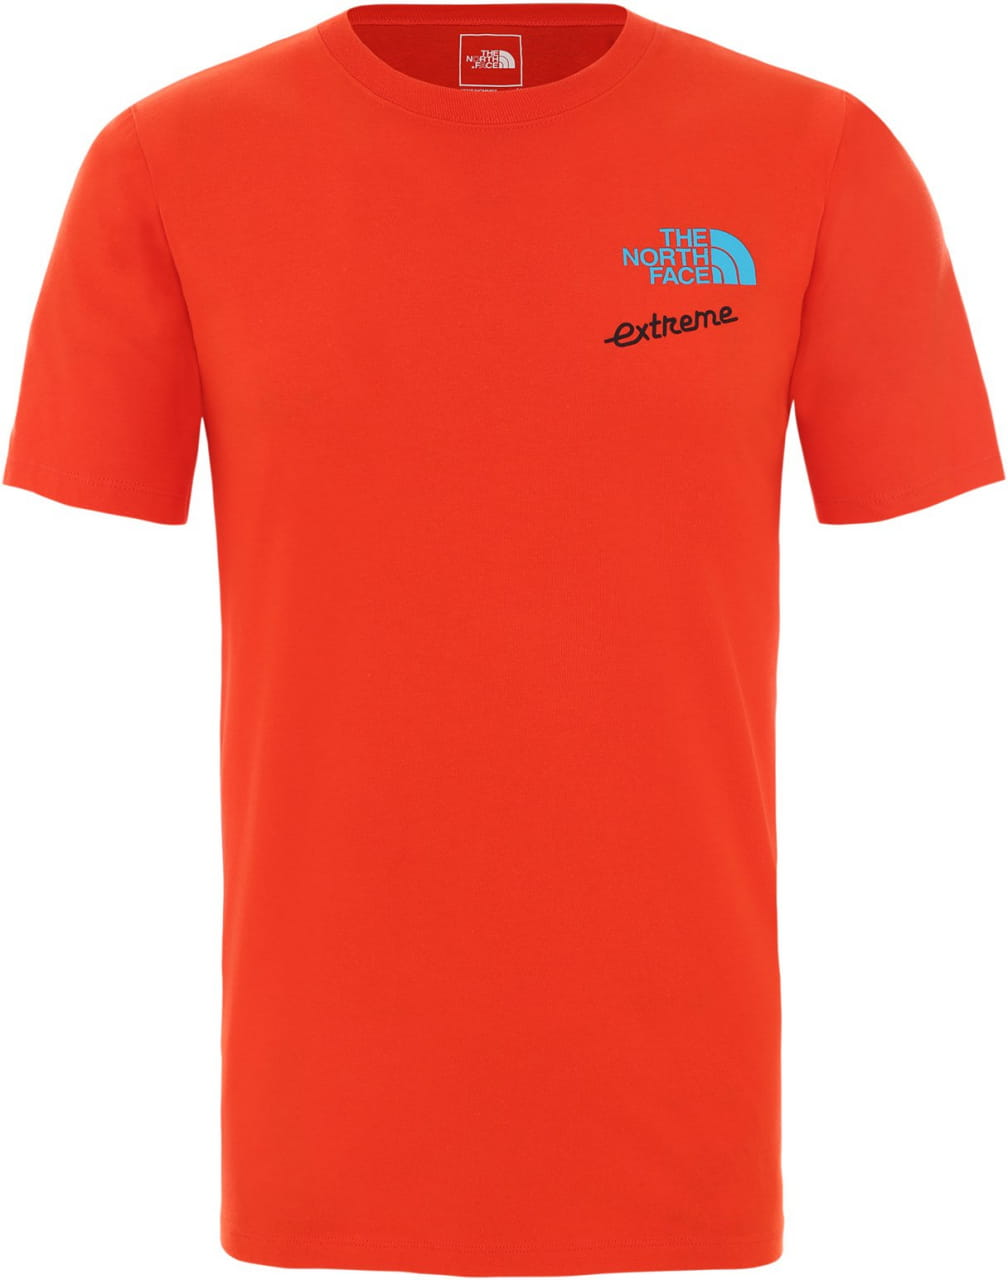 T-Shirts The North Face Men's Extreme T-Shirt